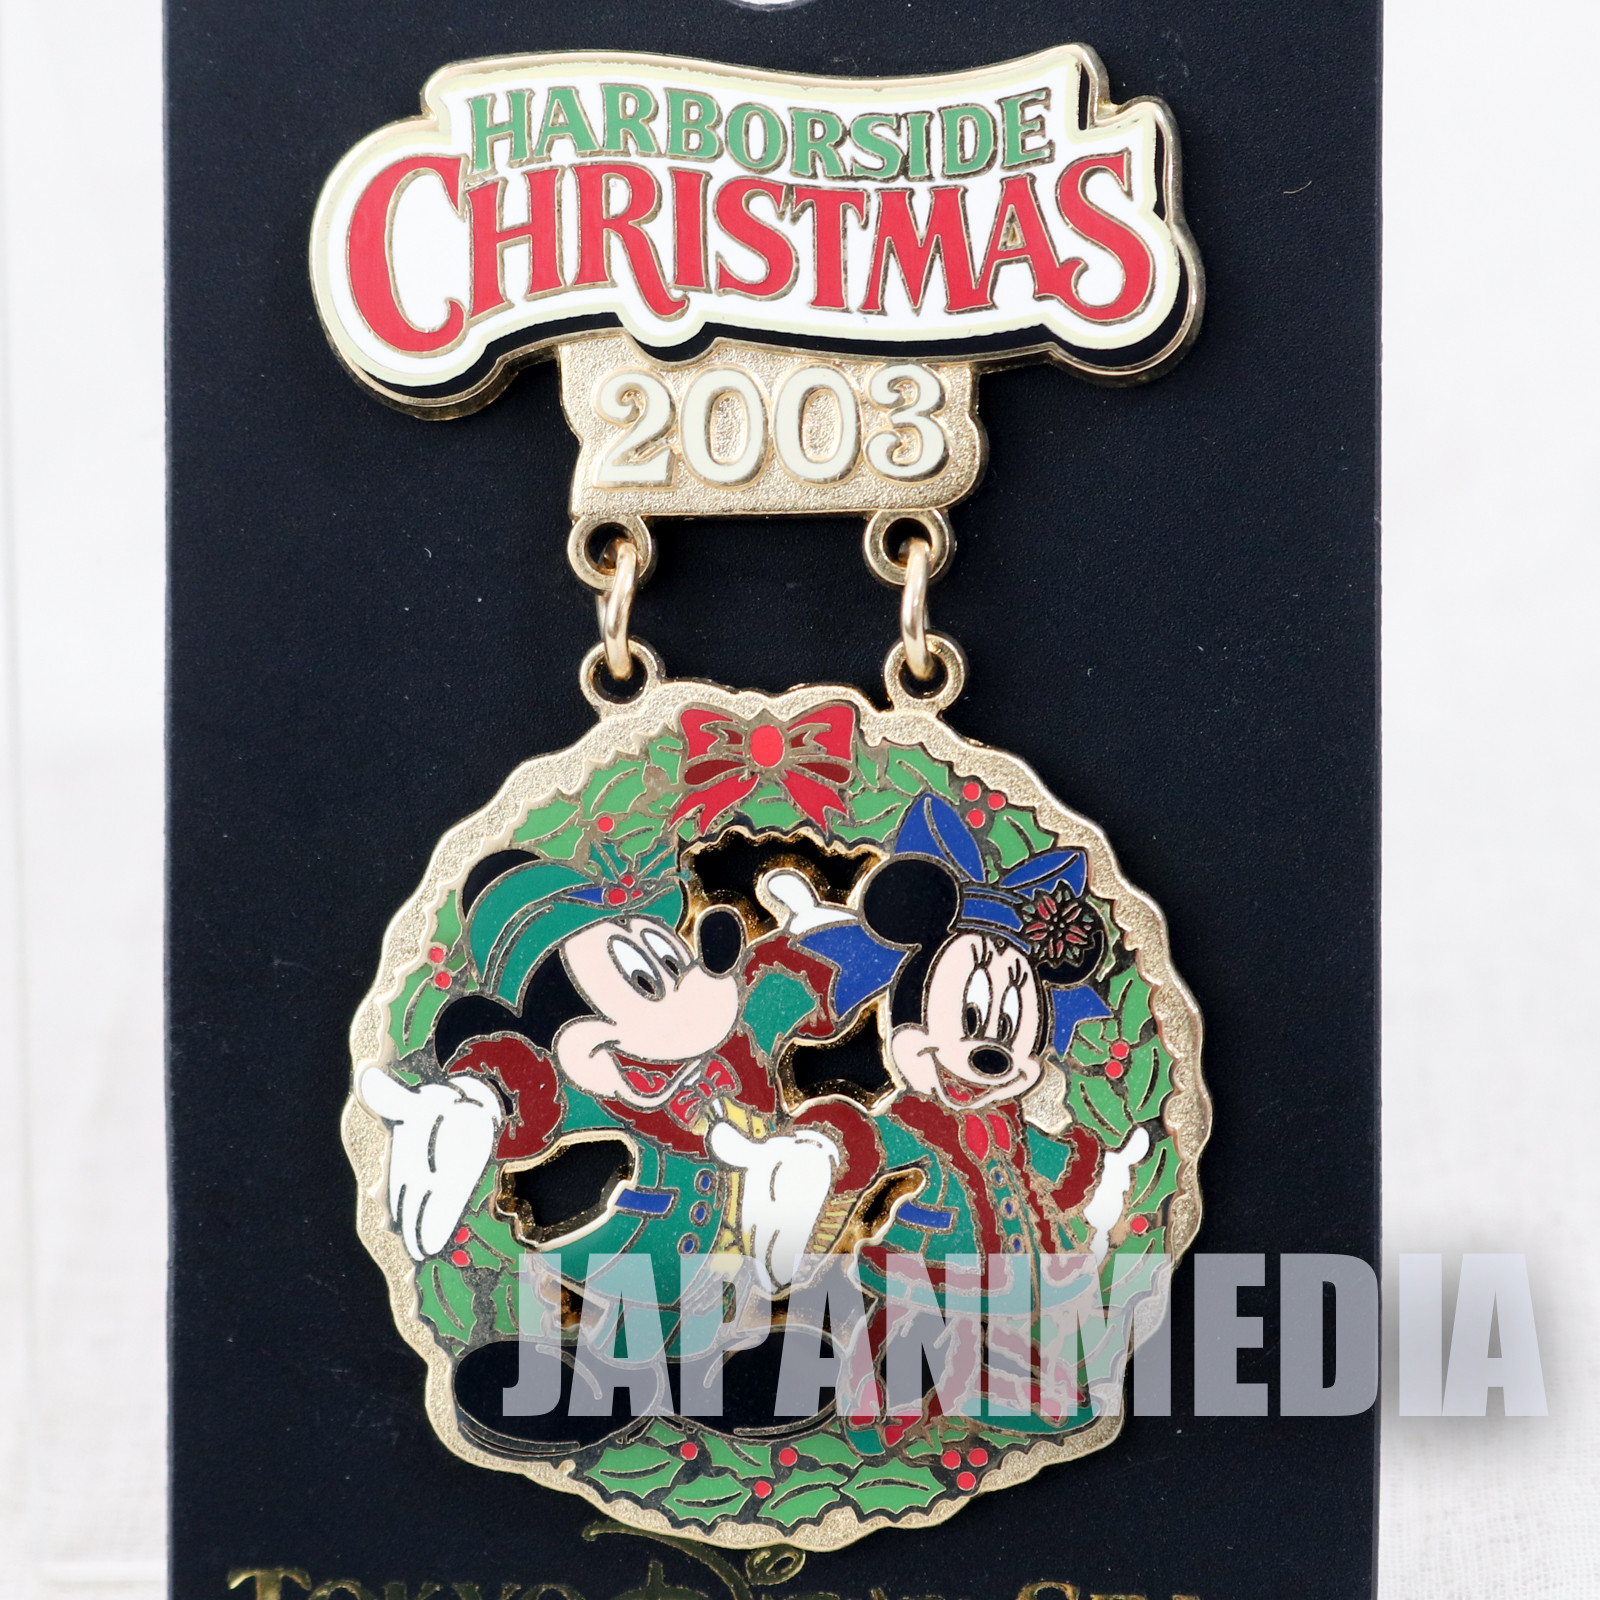 Tokyo Disney Sea Harnorside Chiristmas 2003 Mickey Minnie Mouse Metal Pins